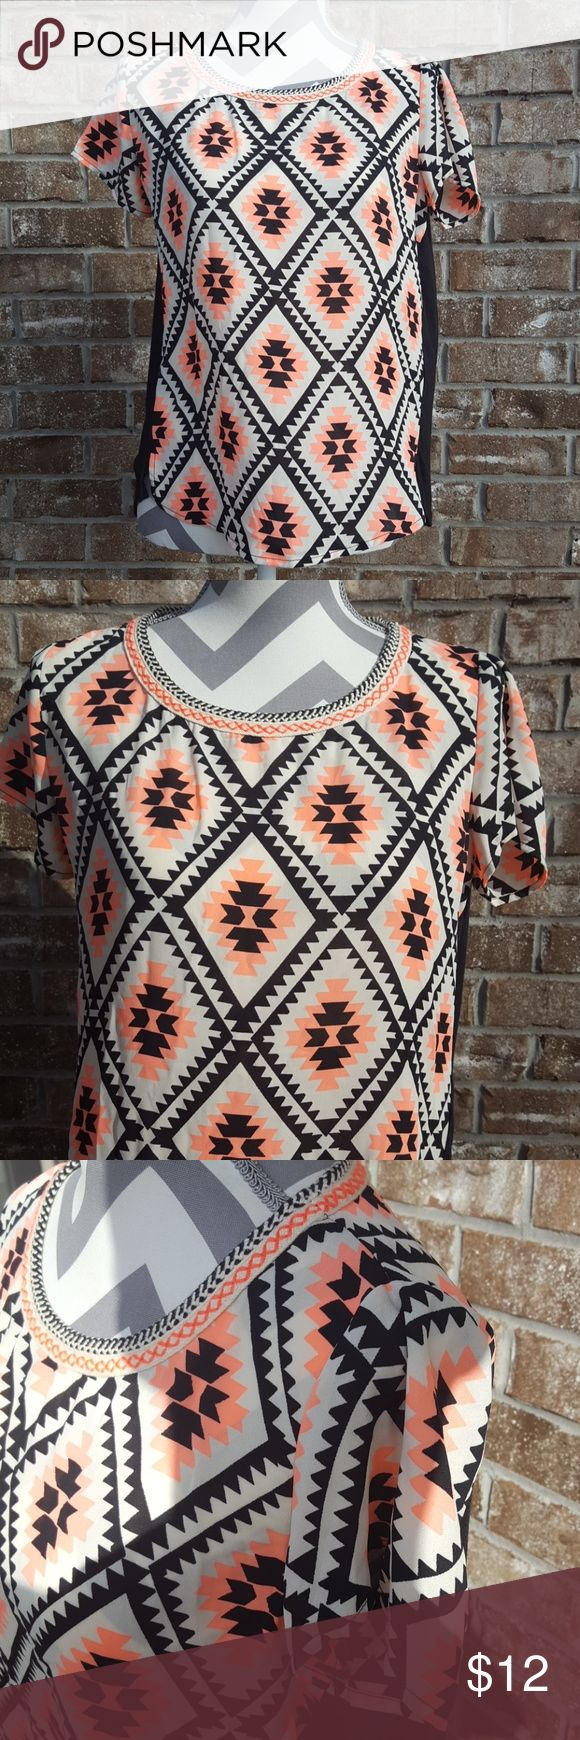 Xhilaration Medium Aztec Blouse This beautiful top incorporates bright coral and black into an Aztec design. The neckline has a very unique detail. The front is completely print and the back is partially the print as well as black. Please see my closet for bundle ideas including Brands like Kate Spade, Michael Kors & More!!! Xhilaration Tops Blouses